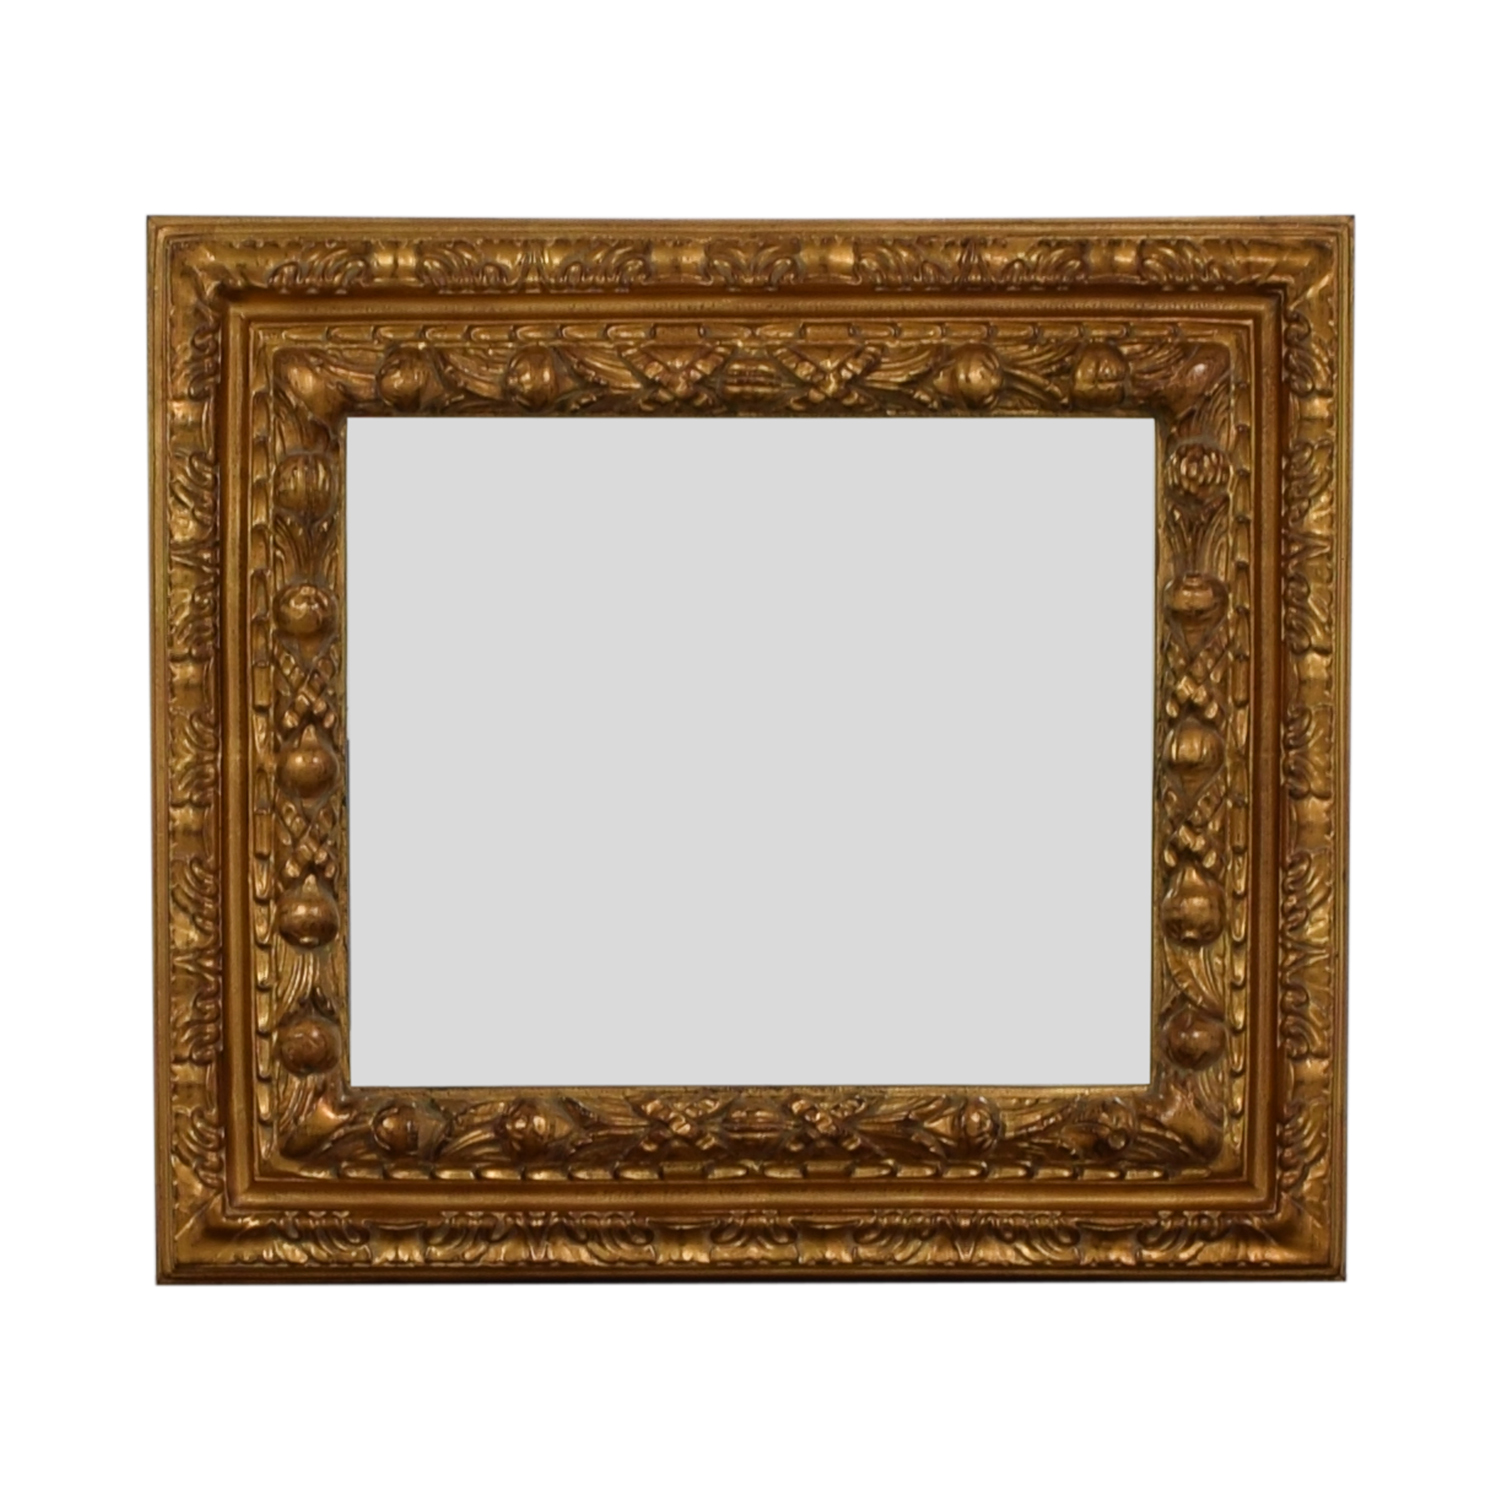 Gold Distressed Wood Framed Wall Mirror dimensions